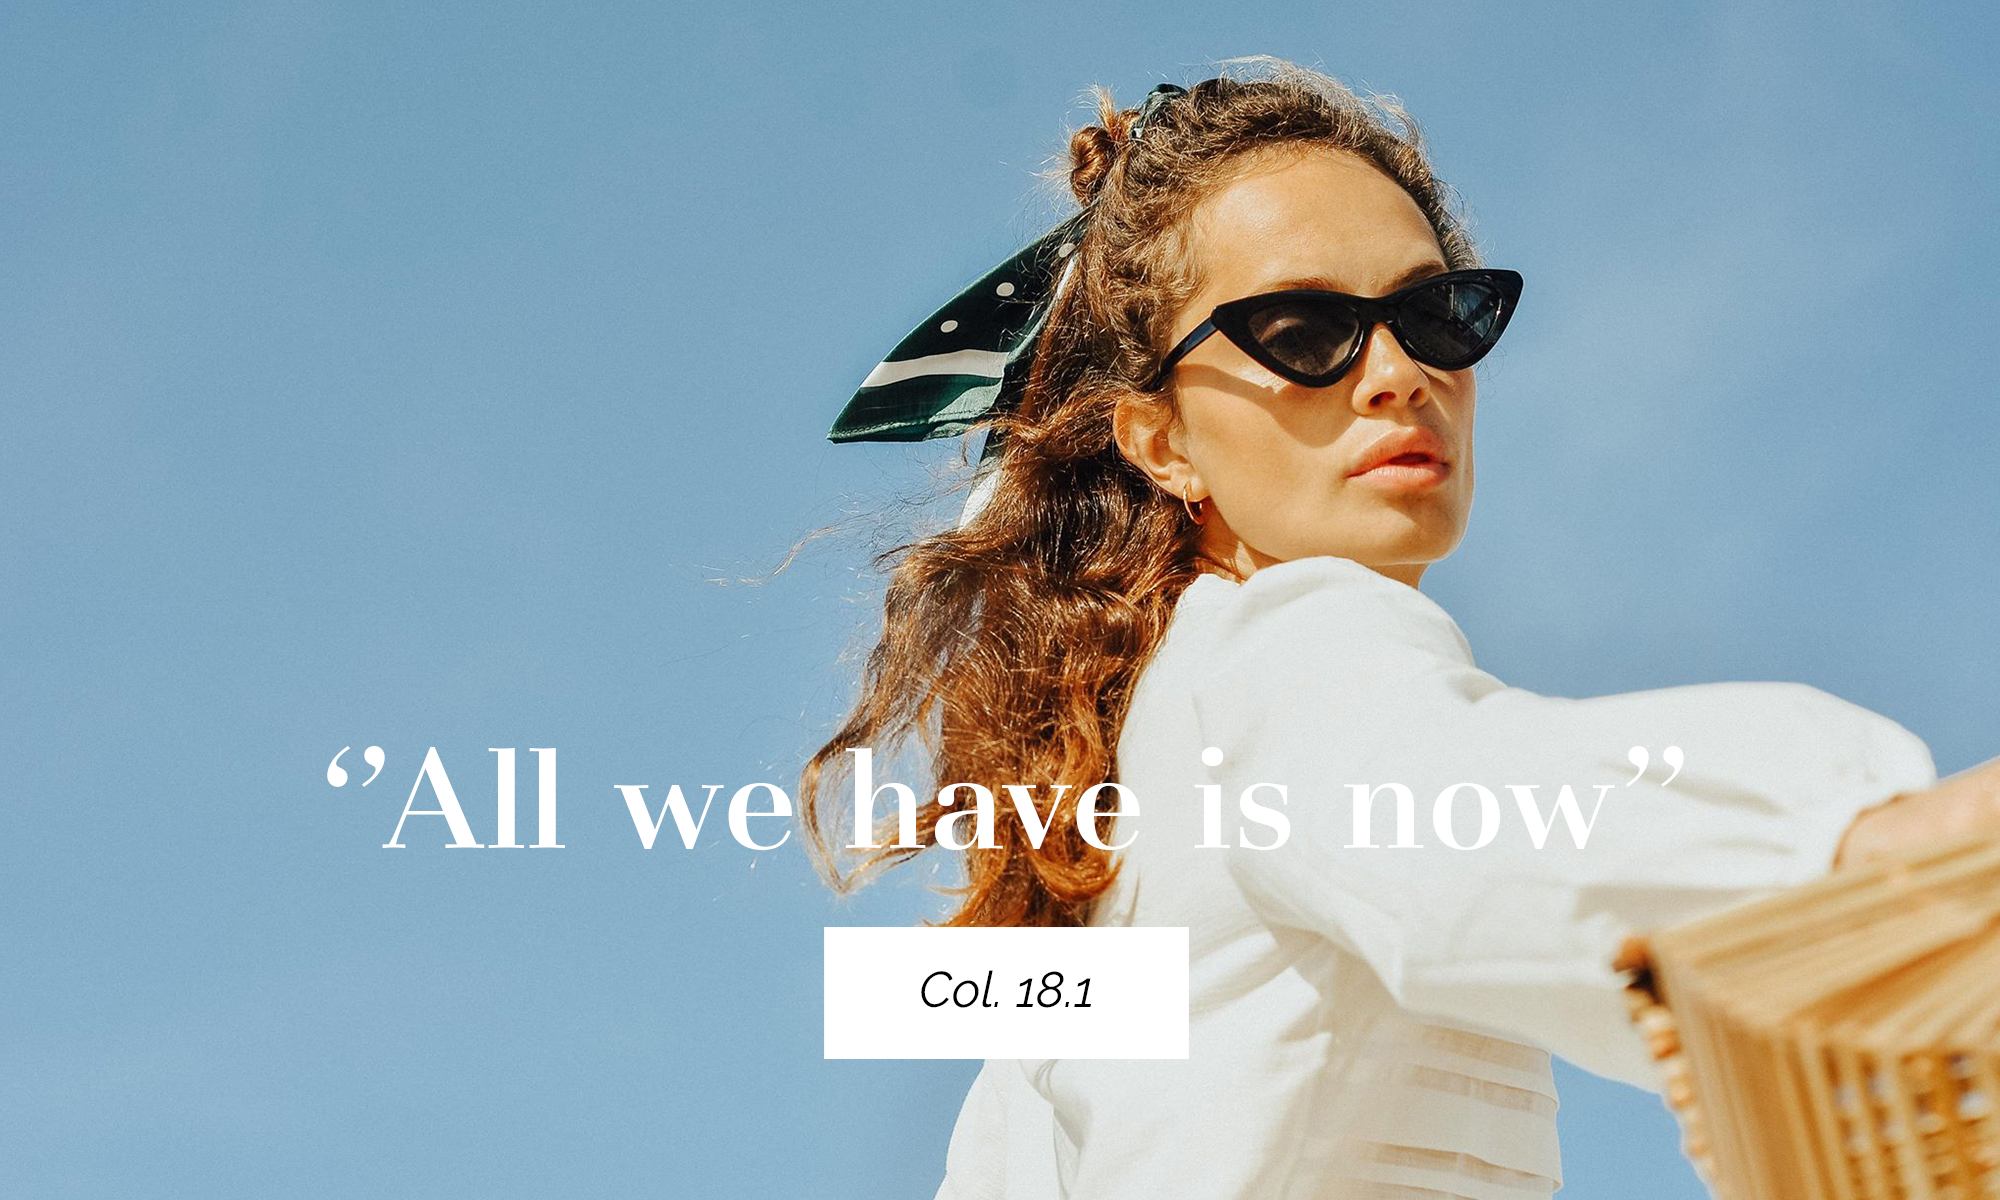 ''All we have is now'' Col. 18.1.jpg